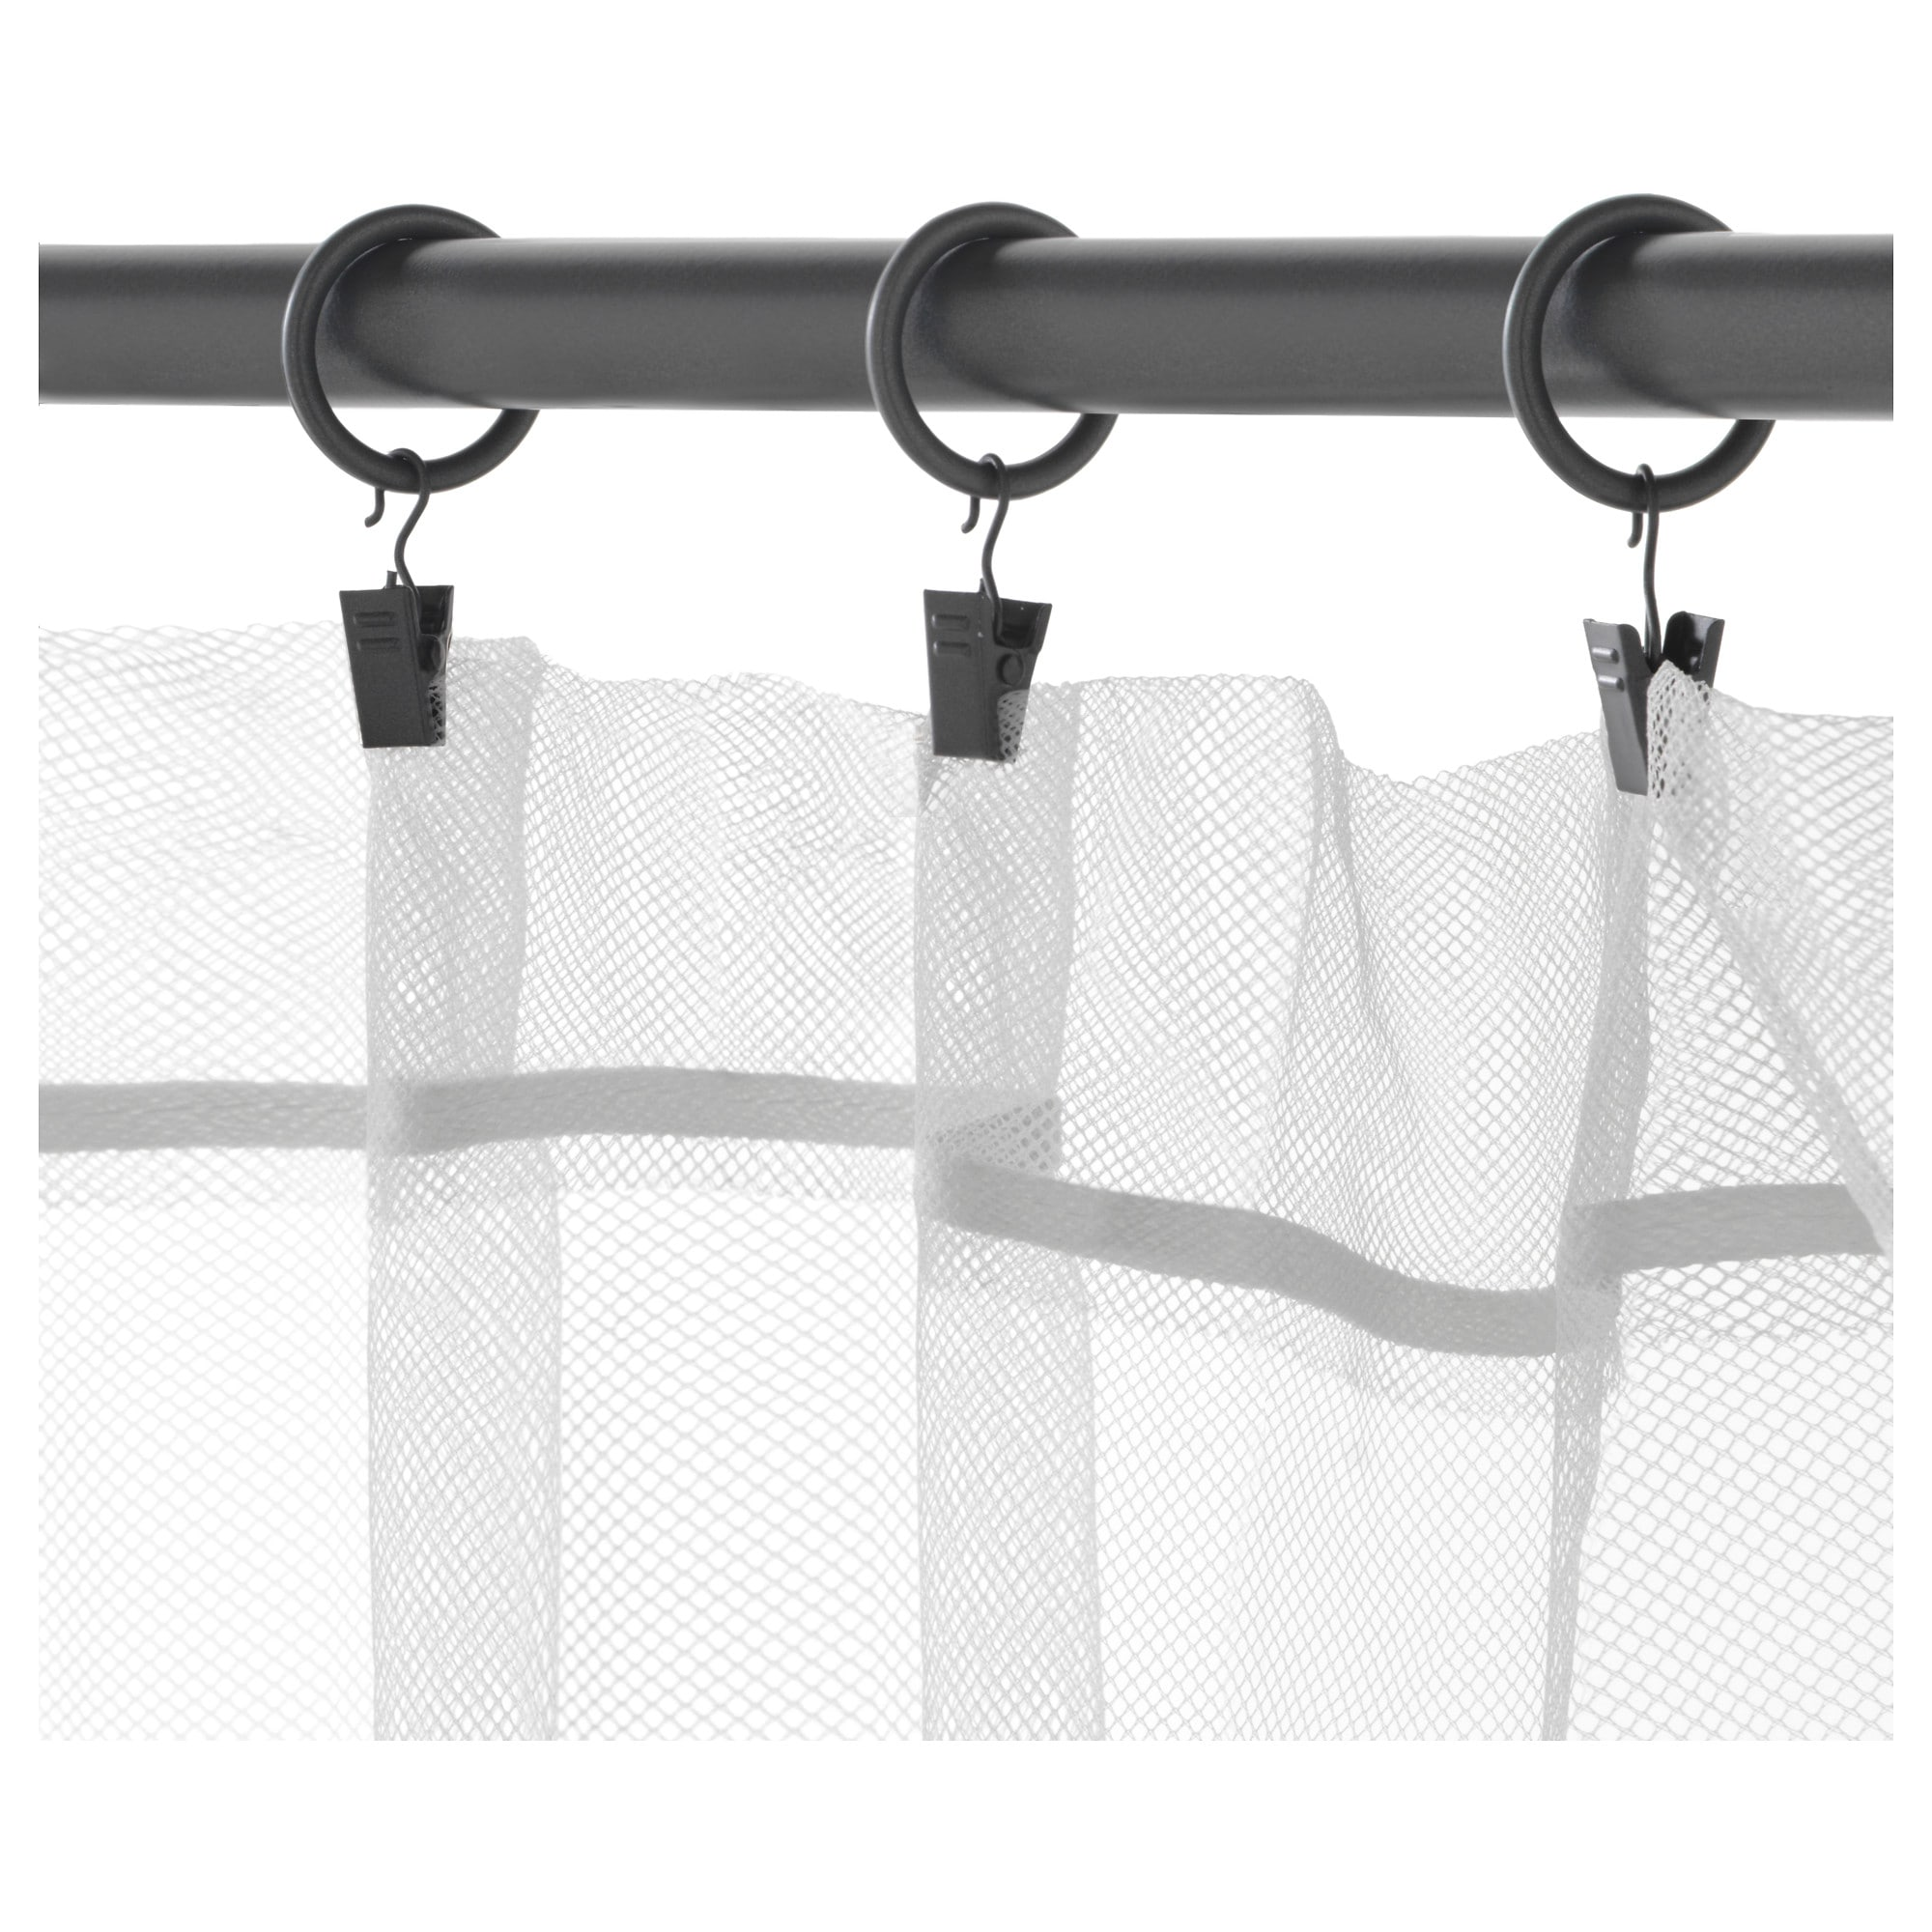 SYRLIG Curtain ring with clip and hook - black - IKEA